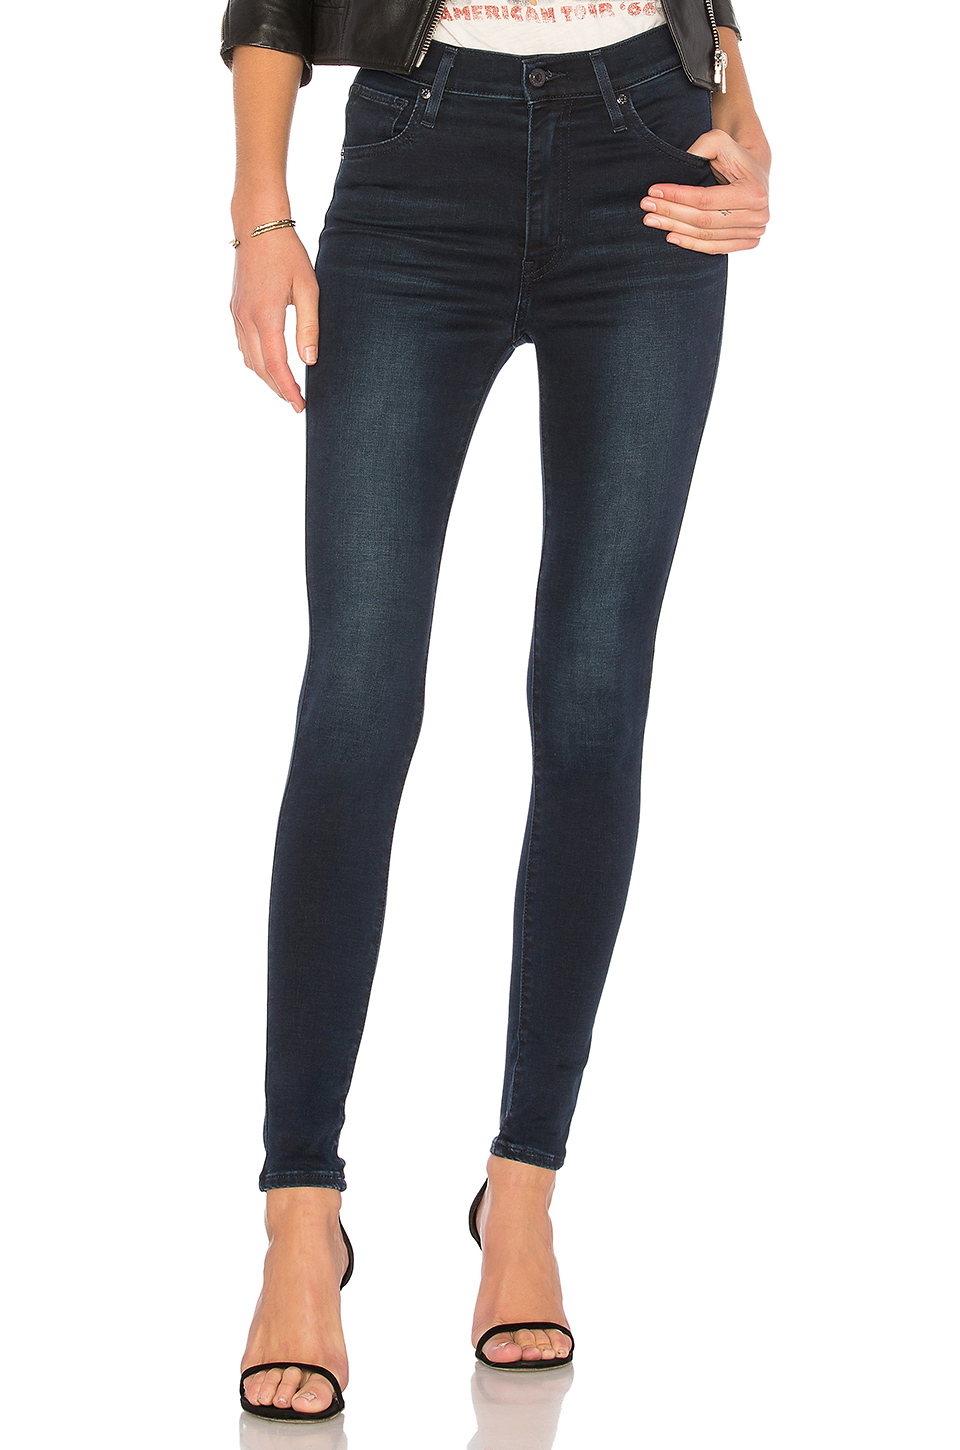 Copy of Levi's Mile High super skinny jeans